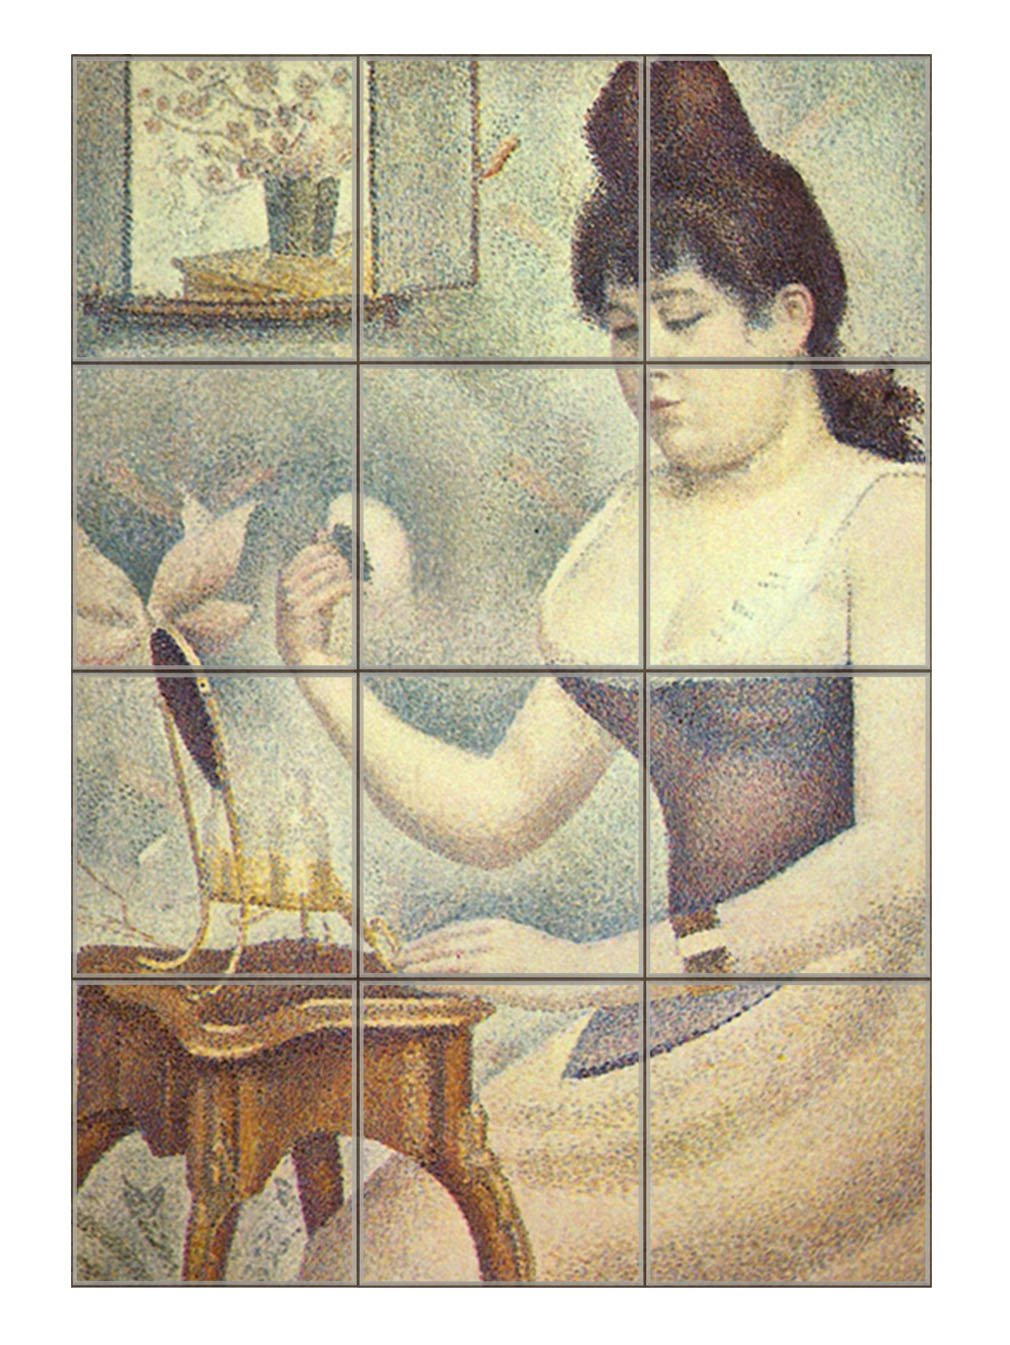 The Woman With The Powder Puff (Seurat) Vertical Tile Mural Satin Finish 24''Hx18''W 6 Inch Tile